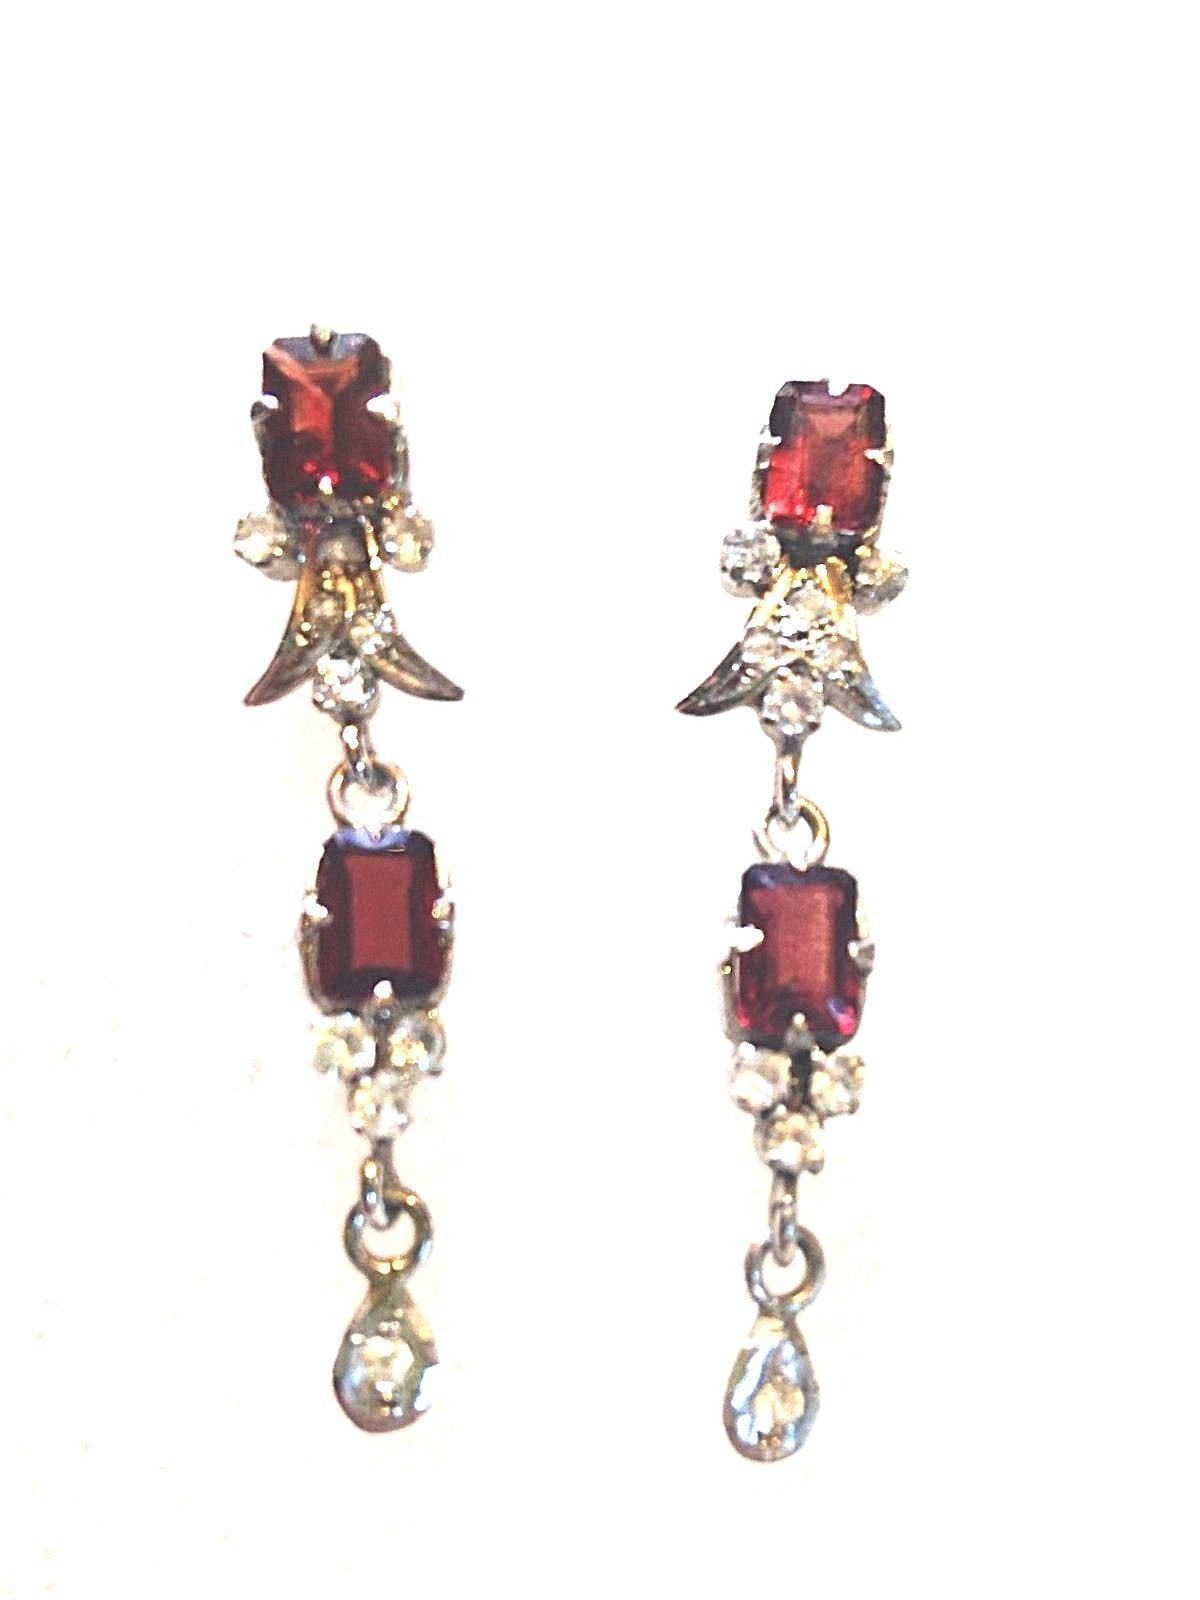 Vintage filigree genuine garnet and crystal sterling silver